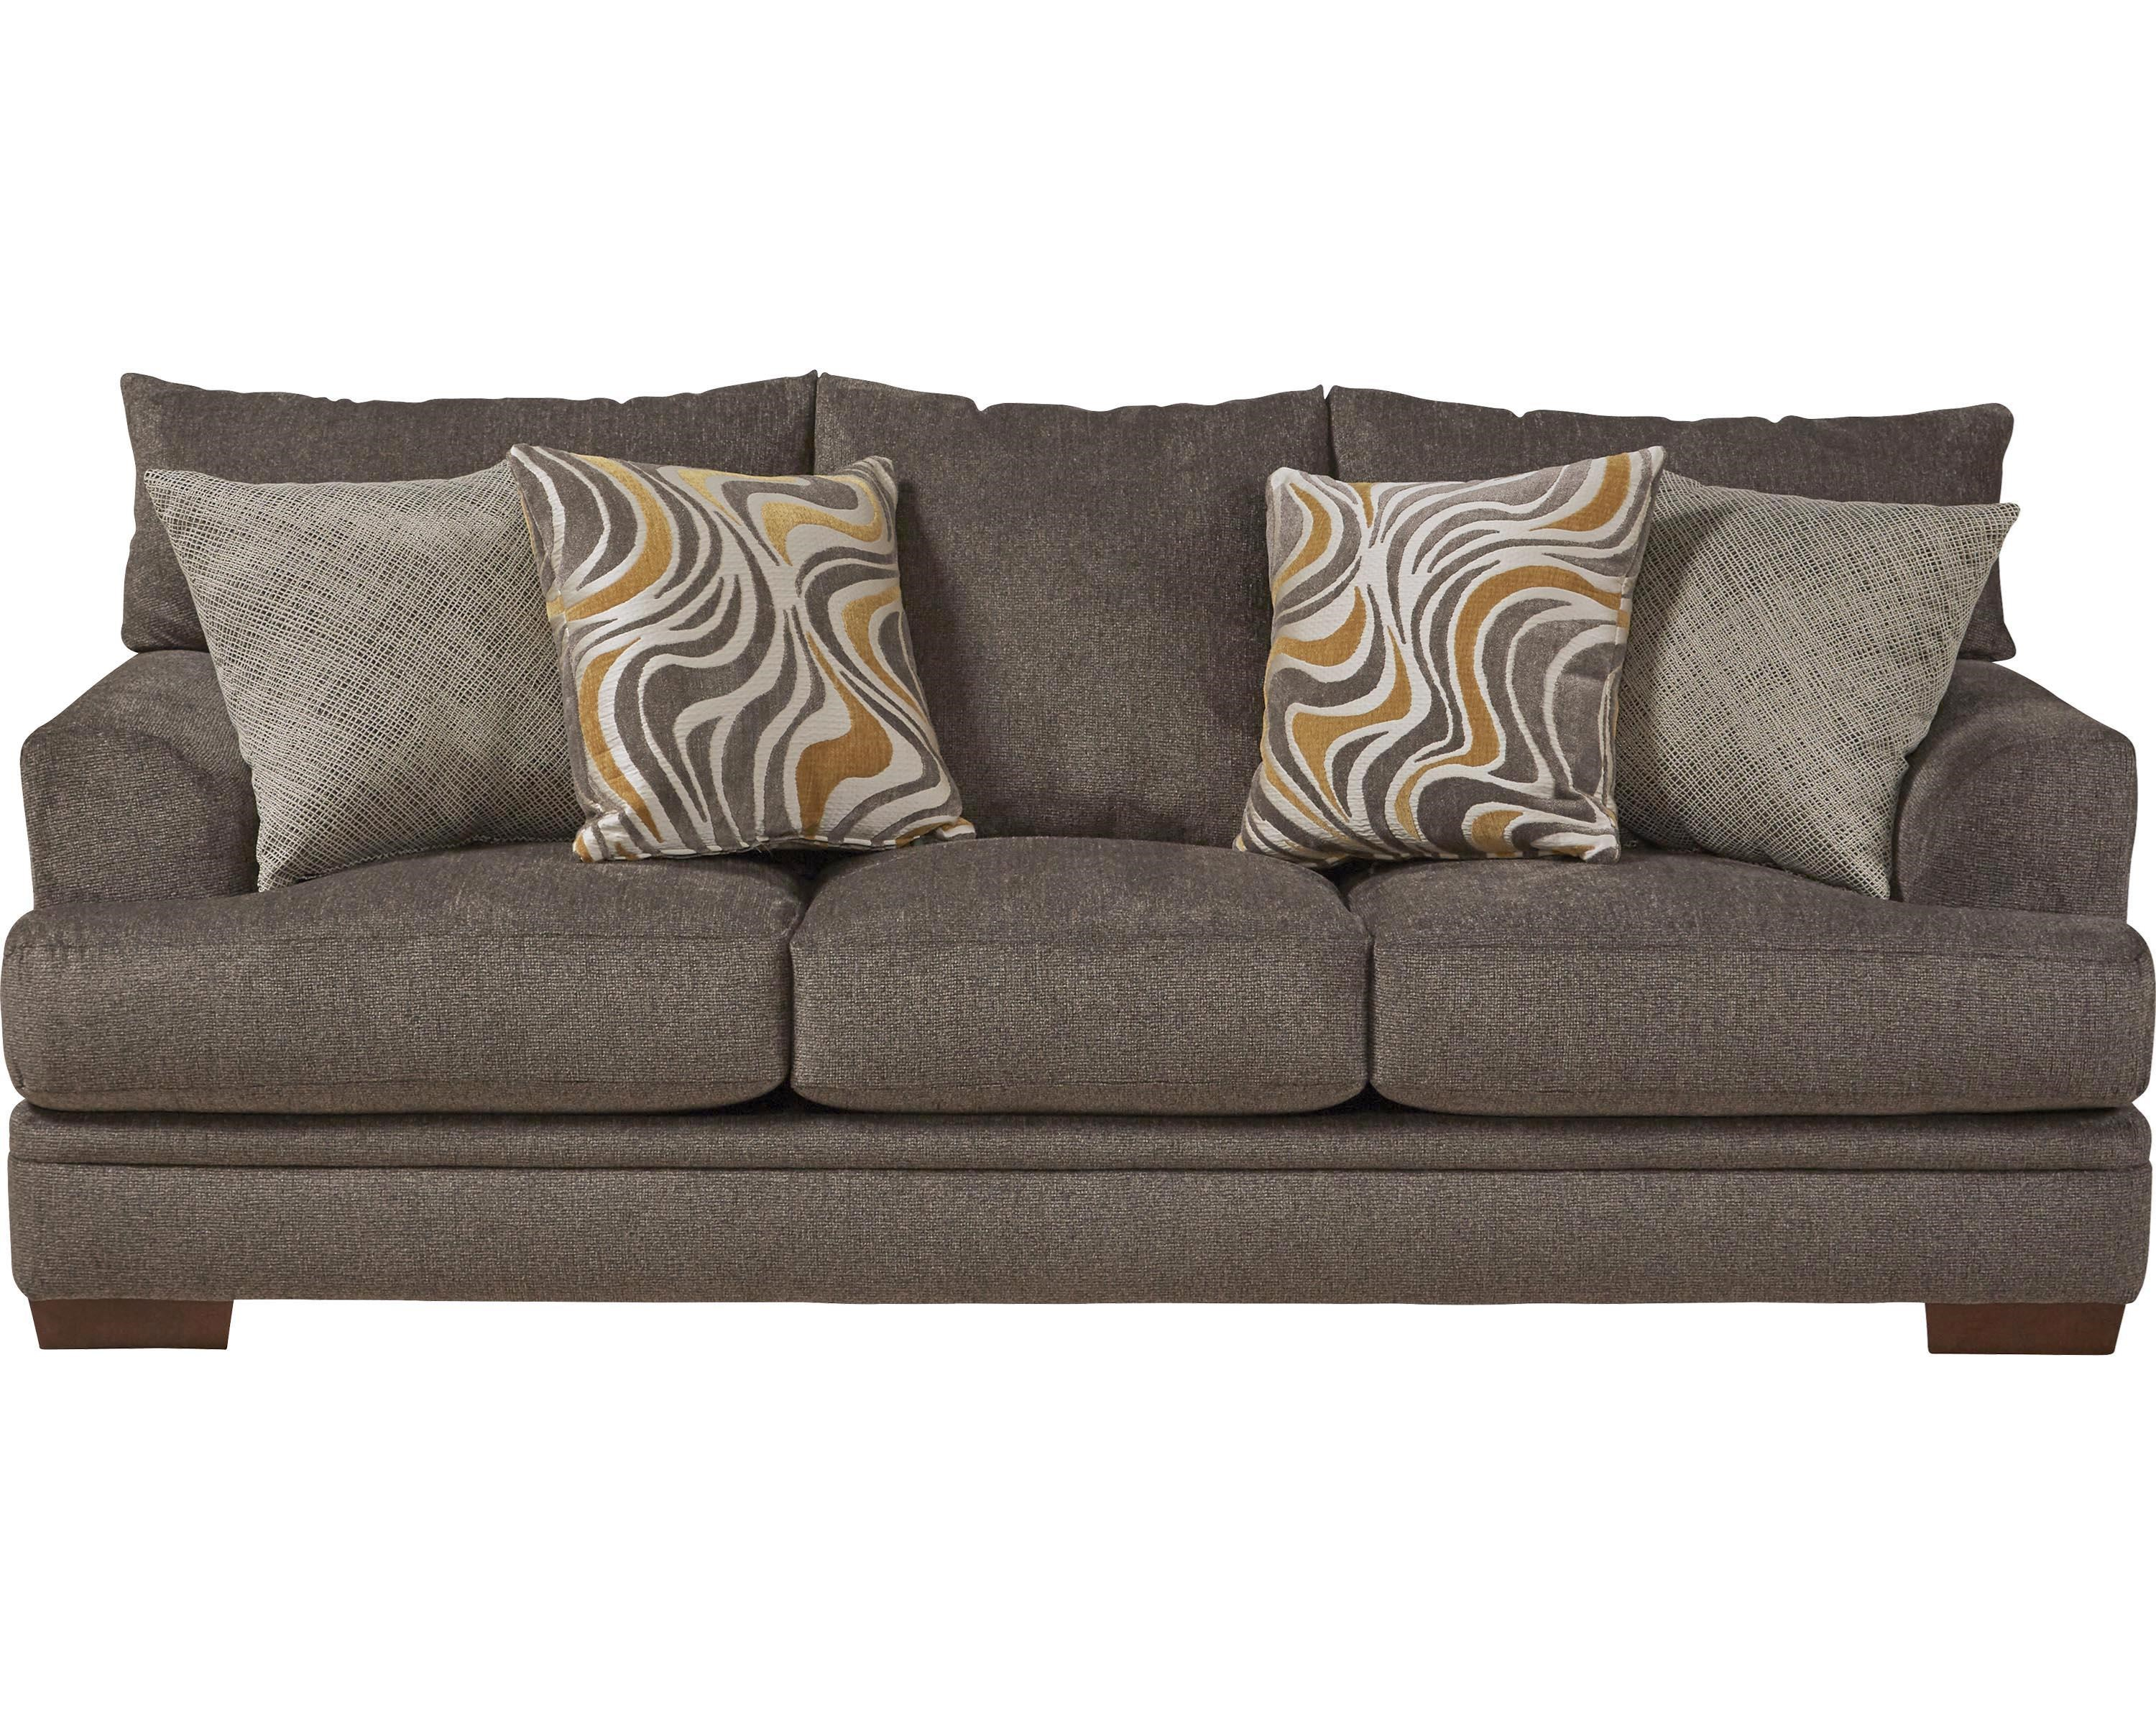 Jackson Furniture Crompton Pewter Sofa Great American